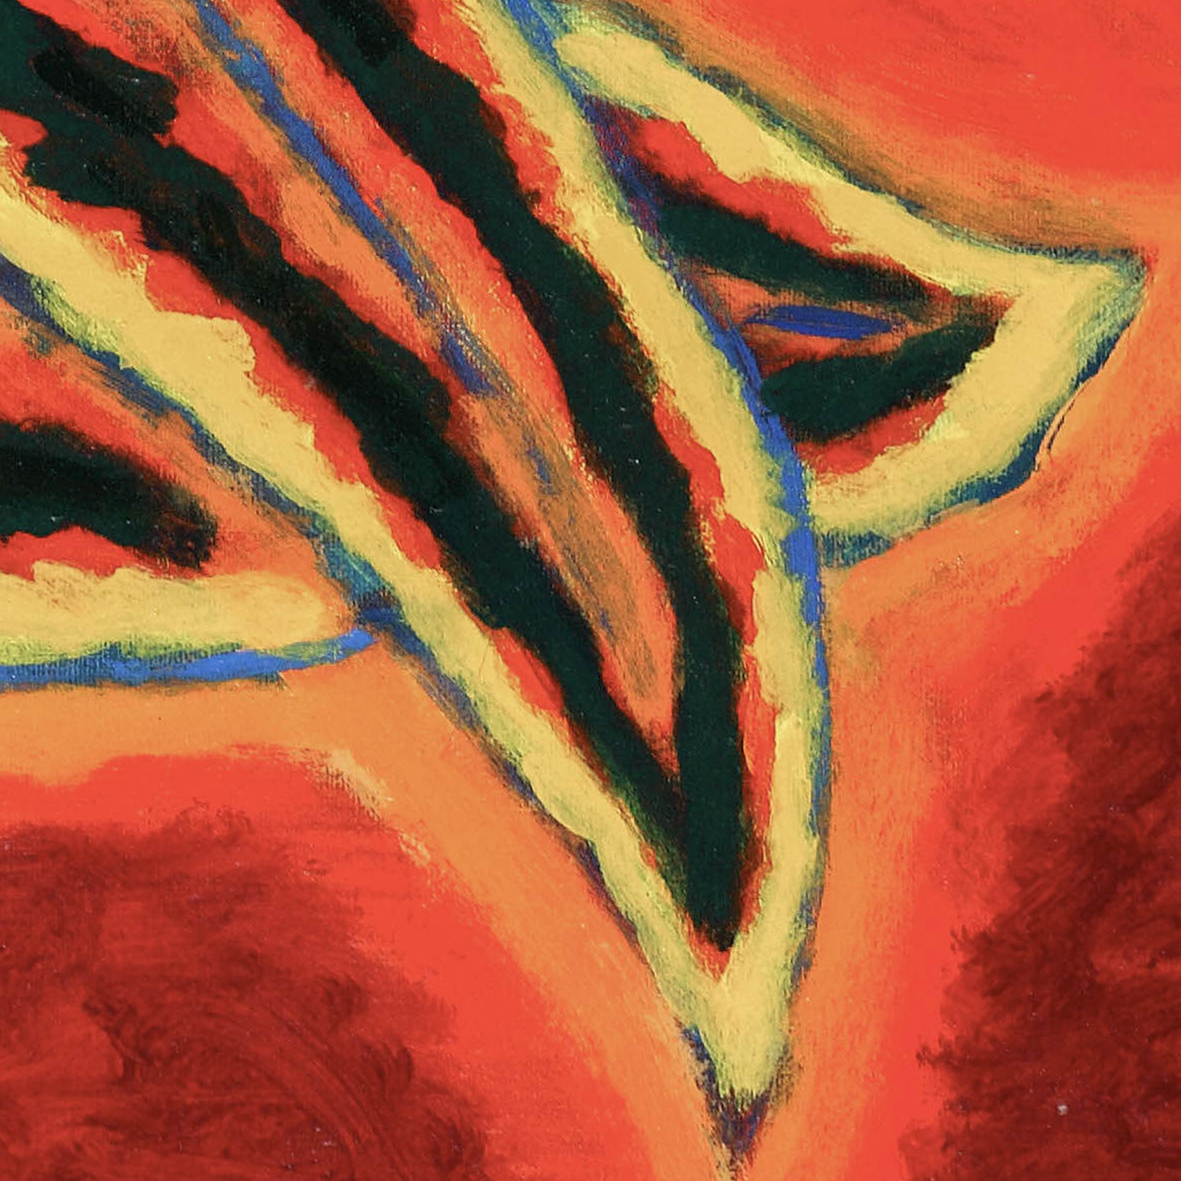 Nashar, Irama Alam (Nature's Rhythm), oil on canvas, 61 x 91.5 cm, 1993 (detail)